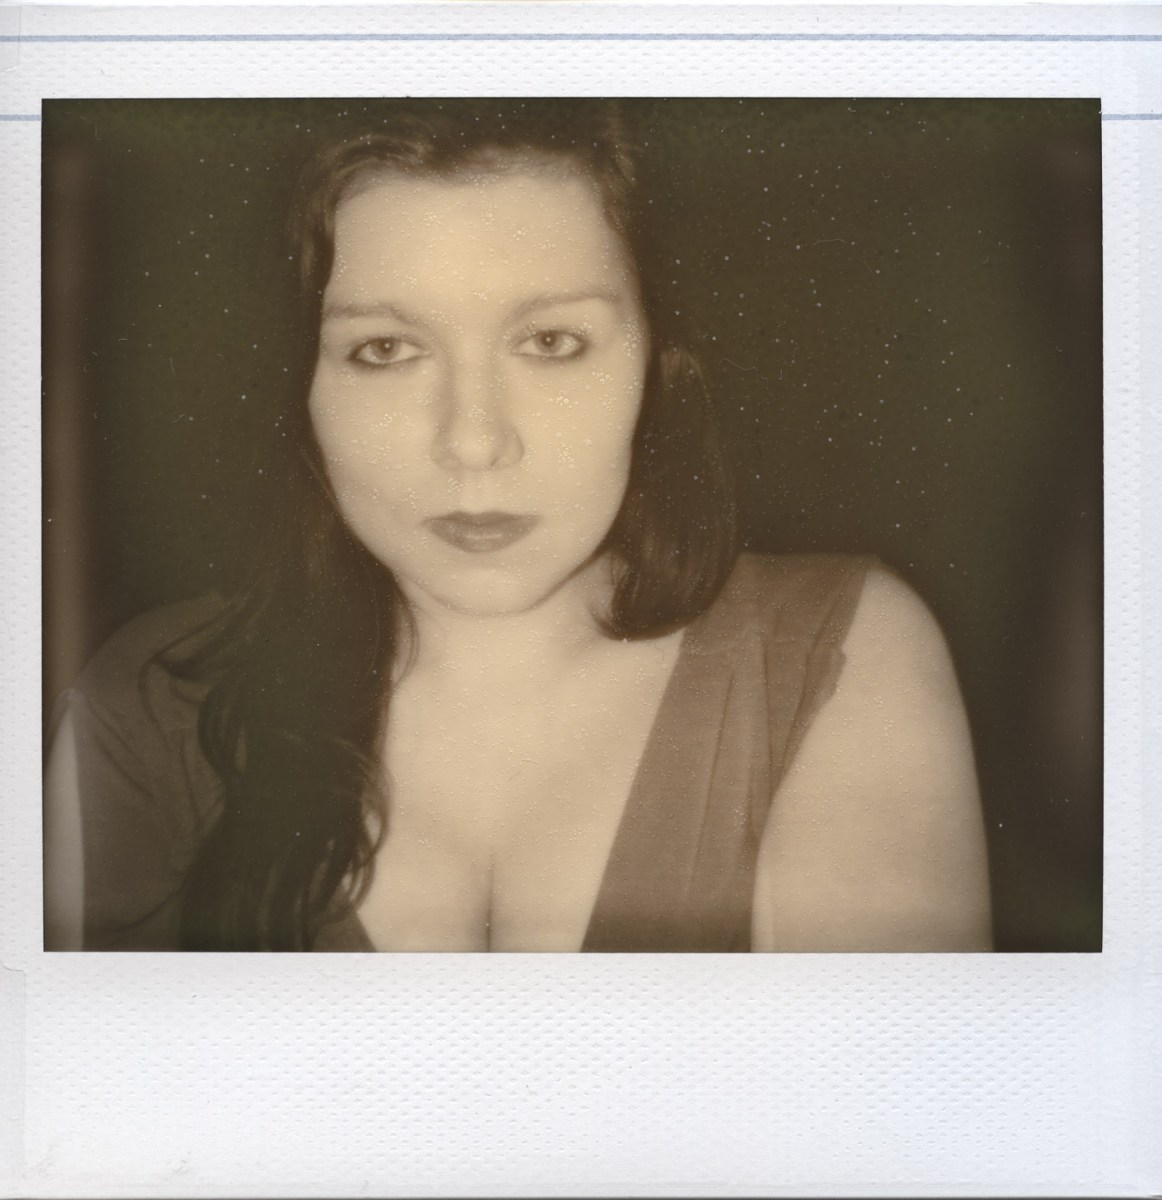 20111211_Impossible-Marie-S_001.jpg